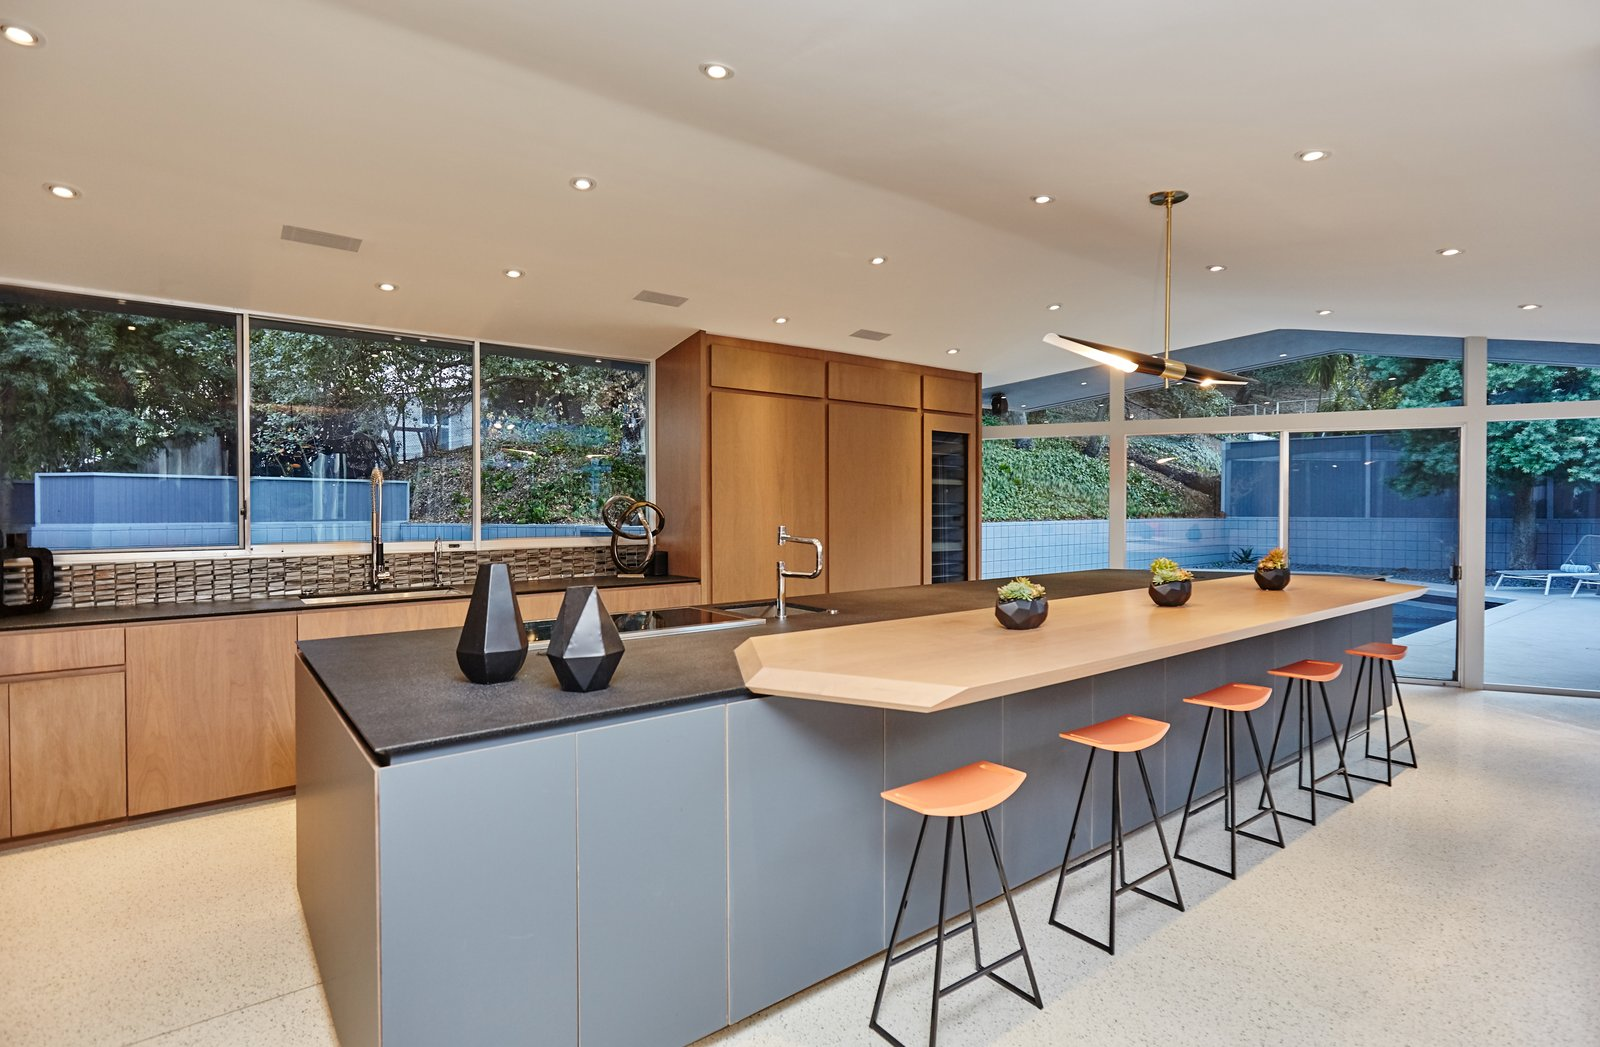 Kitchen, Granite Counter, Terrazzo Floor, Wood Cabinet, and Recessed Lighting  Photo 6 of 10 in A Hexagonal Midcentury Residence in Southern California Offered at $2.89M